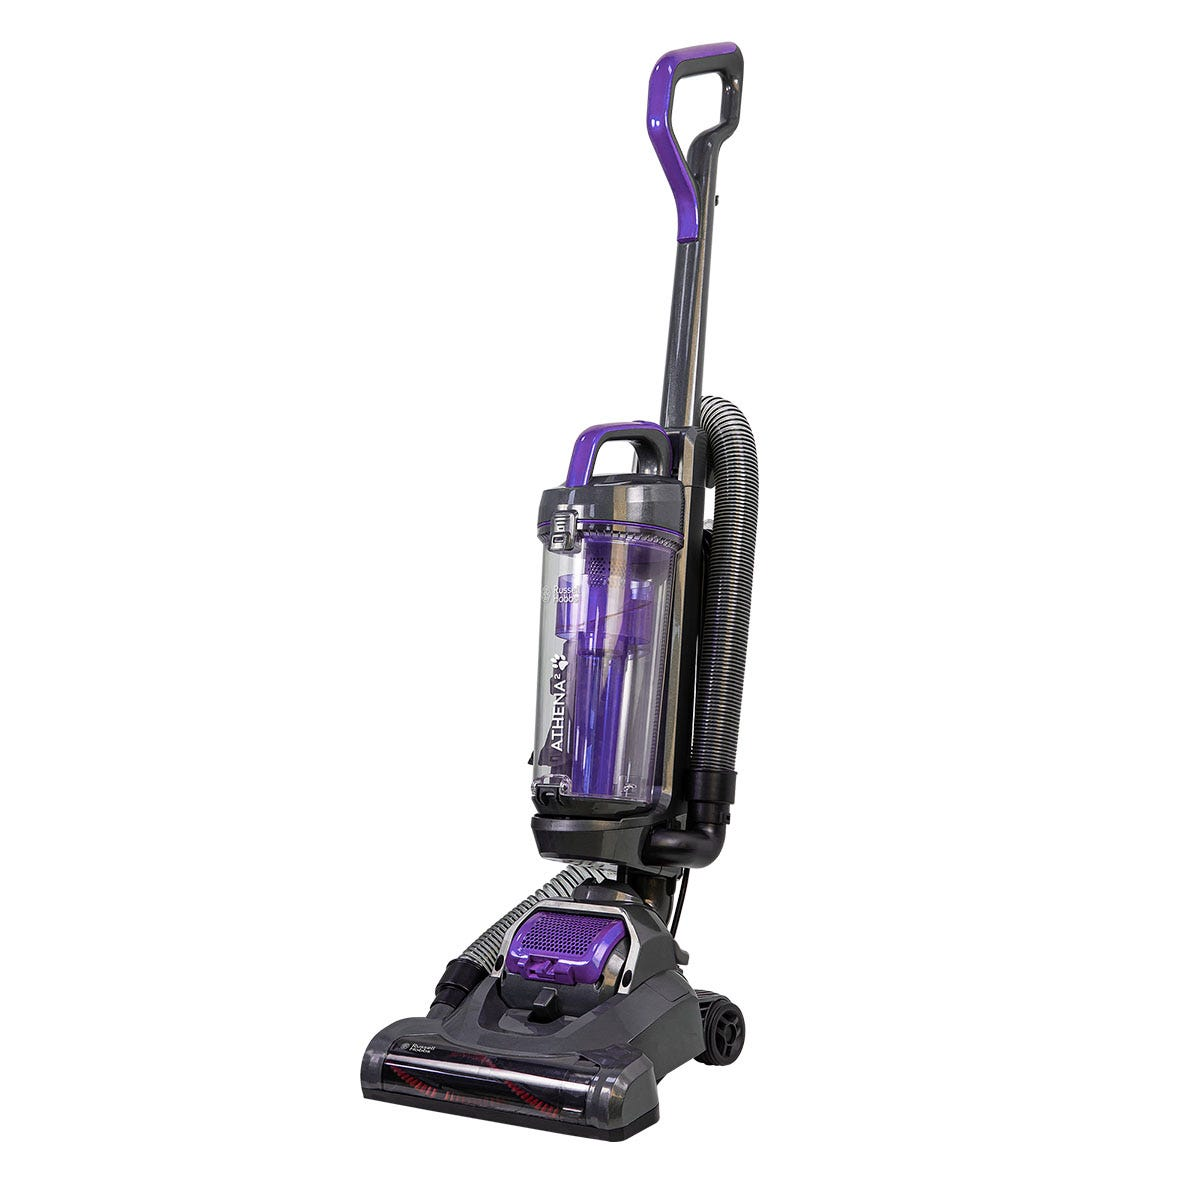 Russell Hobbs RHUV5601 700W Athena2 2L Pets Upright Vacuum Cleaner - Spectrum Grey and Purple